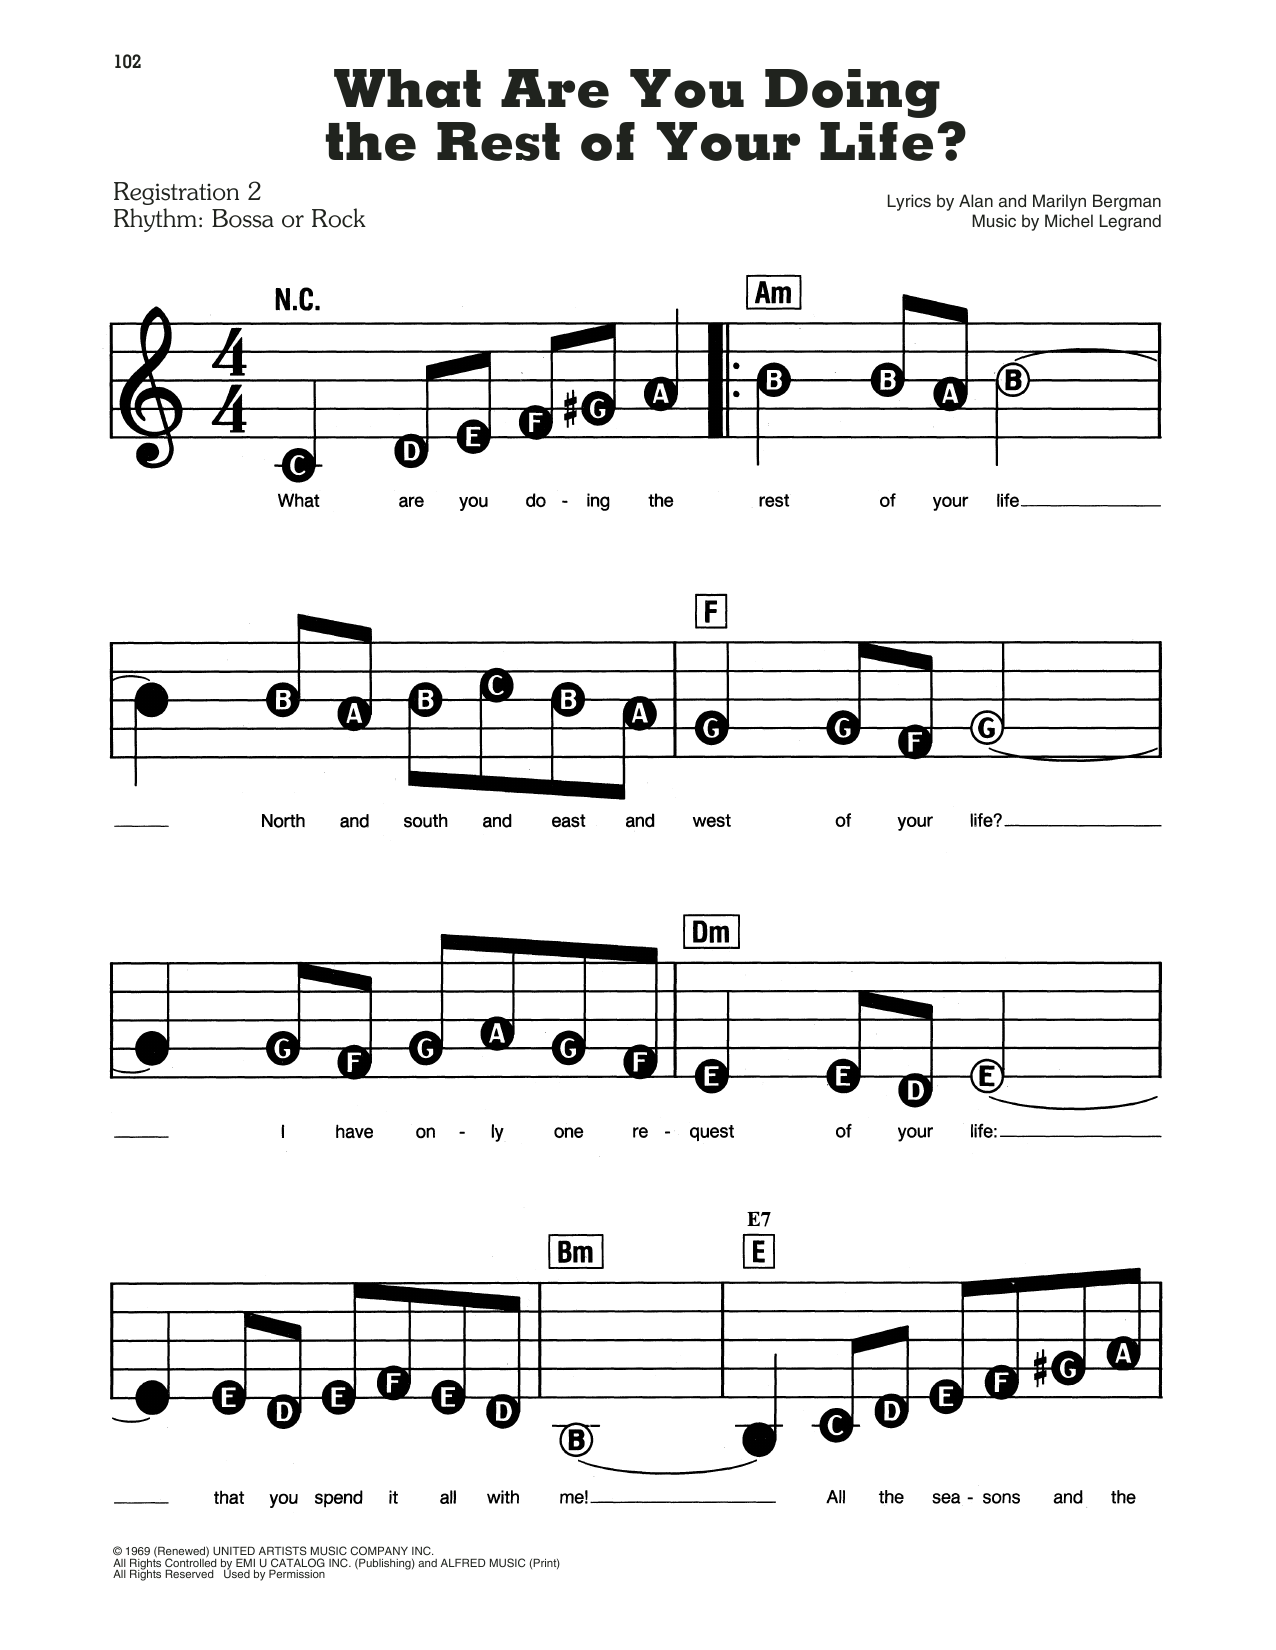 Alan and Marilyn Bergman and Michel Legrand What Are You Doing The Rest Of Your Life? sheet music notes and chords. Download Printable PDF.